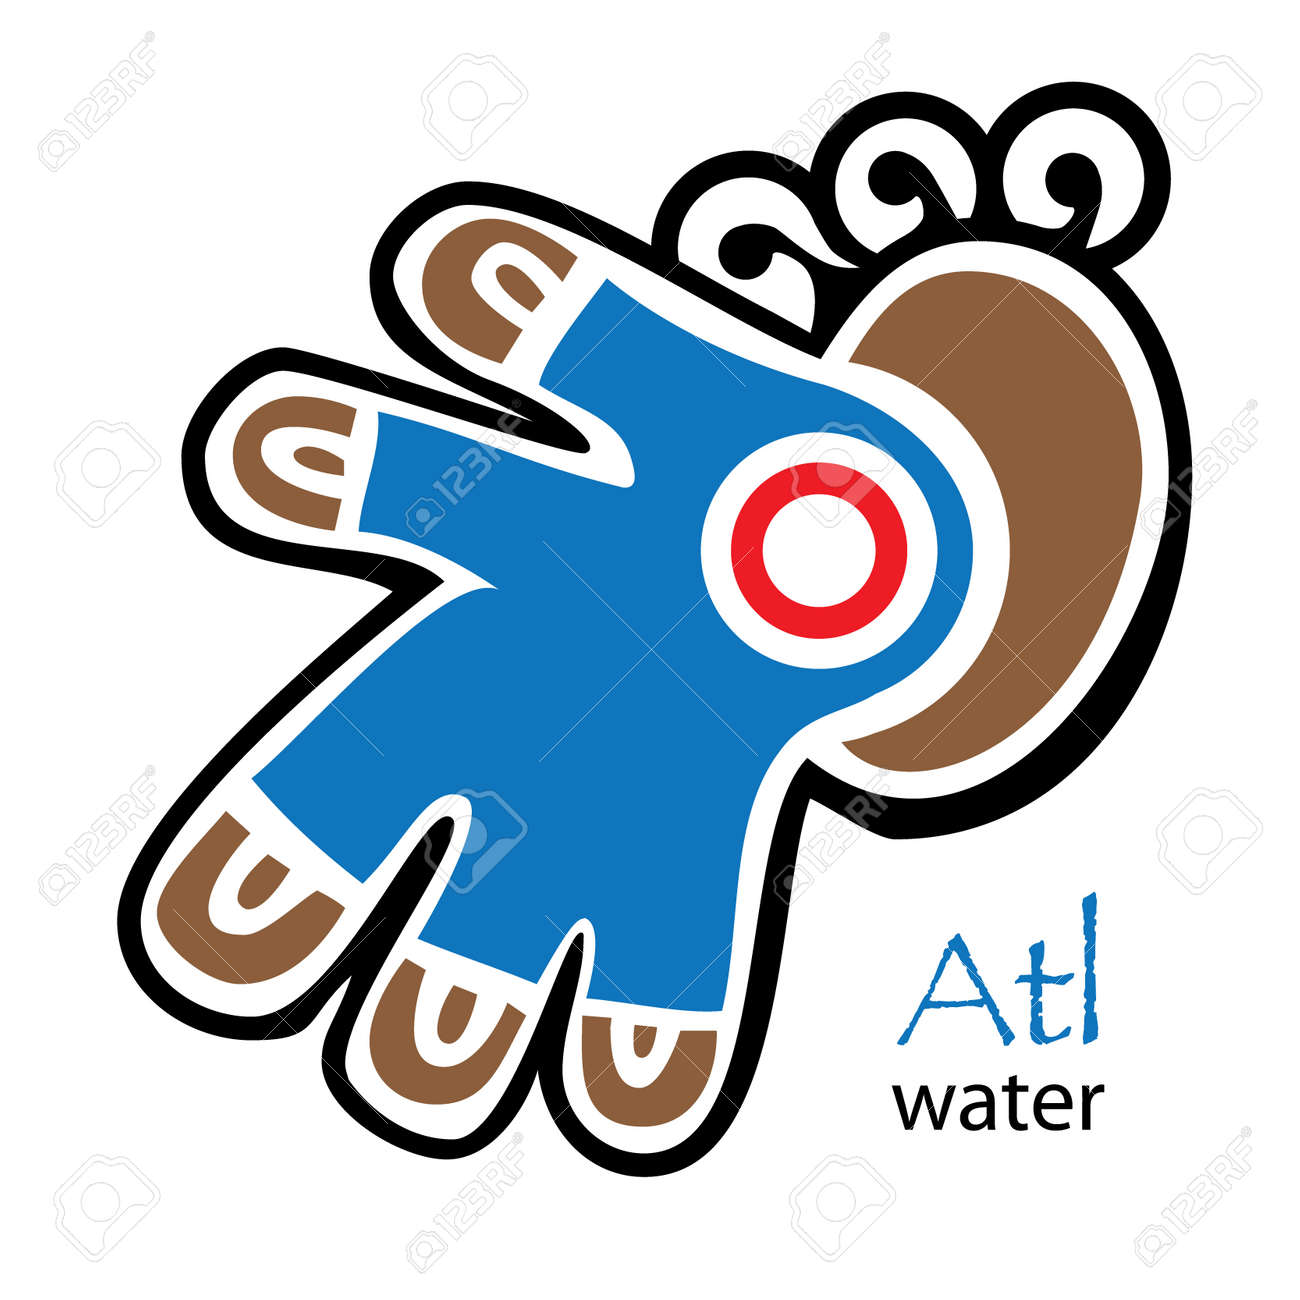 Blue brown and red aztec water symbol royalty free cliparts blue brown and red aztec water symbol stock vector 55161732 biocorpaavc Images